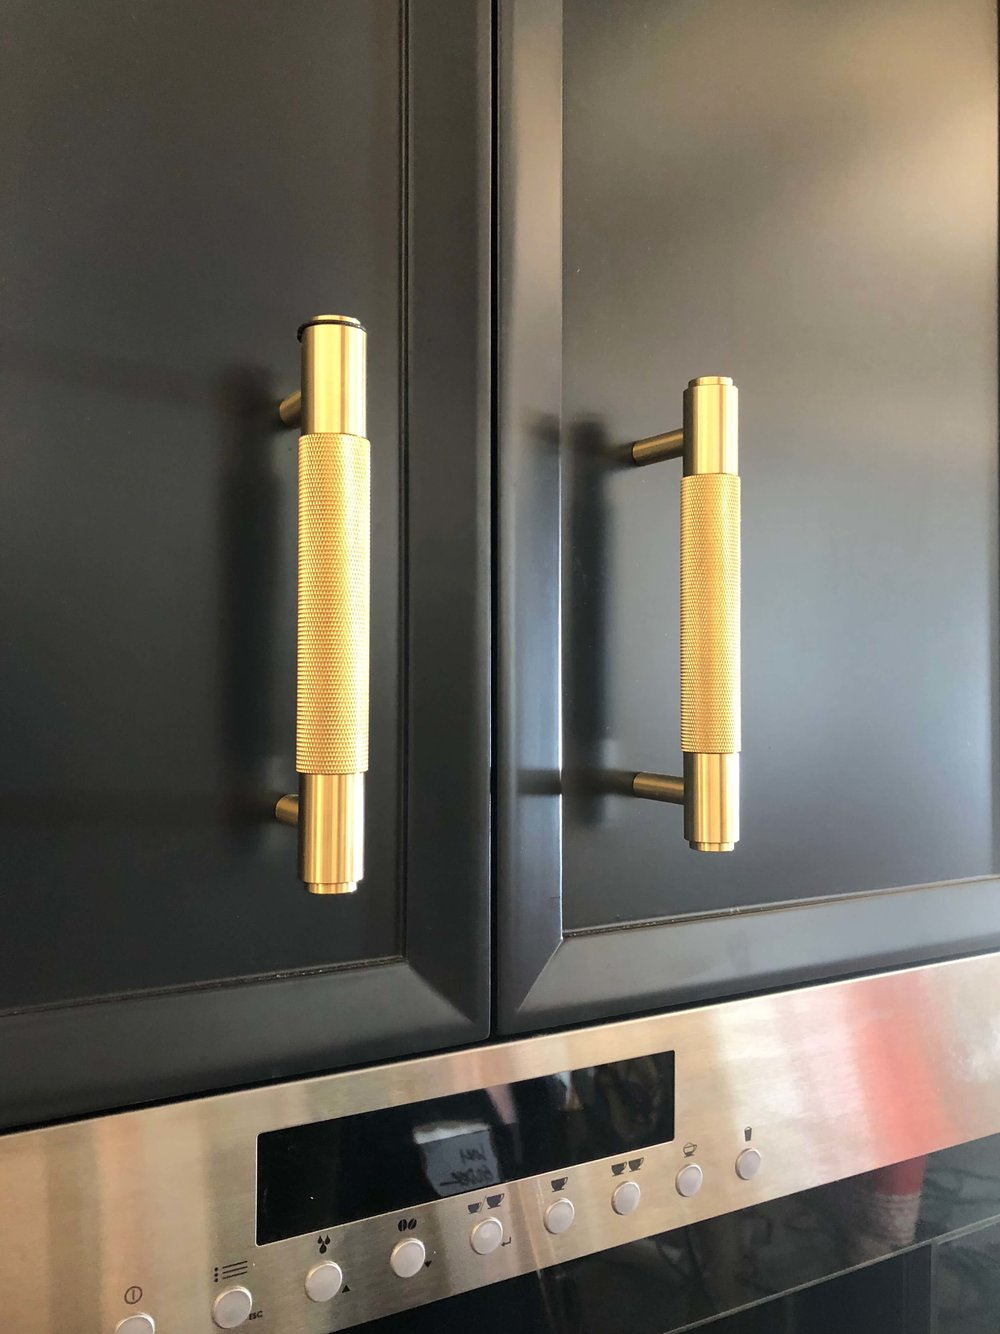 Brass cabinet pulls on black cabinets -  Kitchen designed by Jeanne K Chung